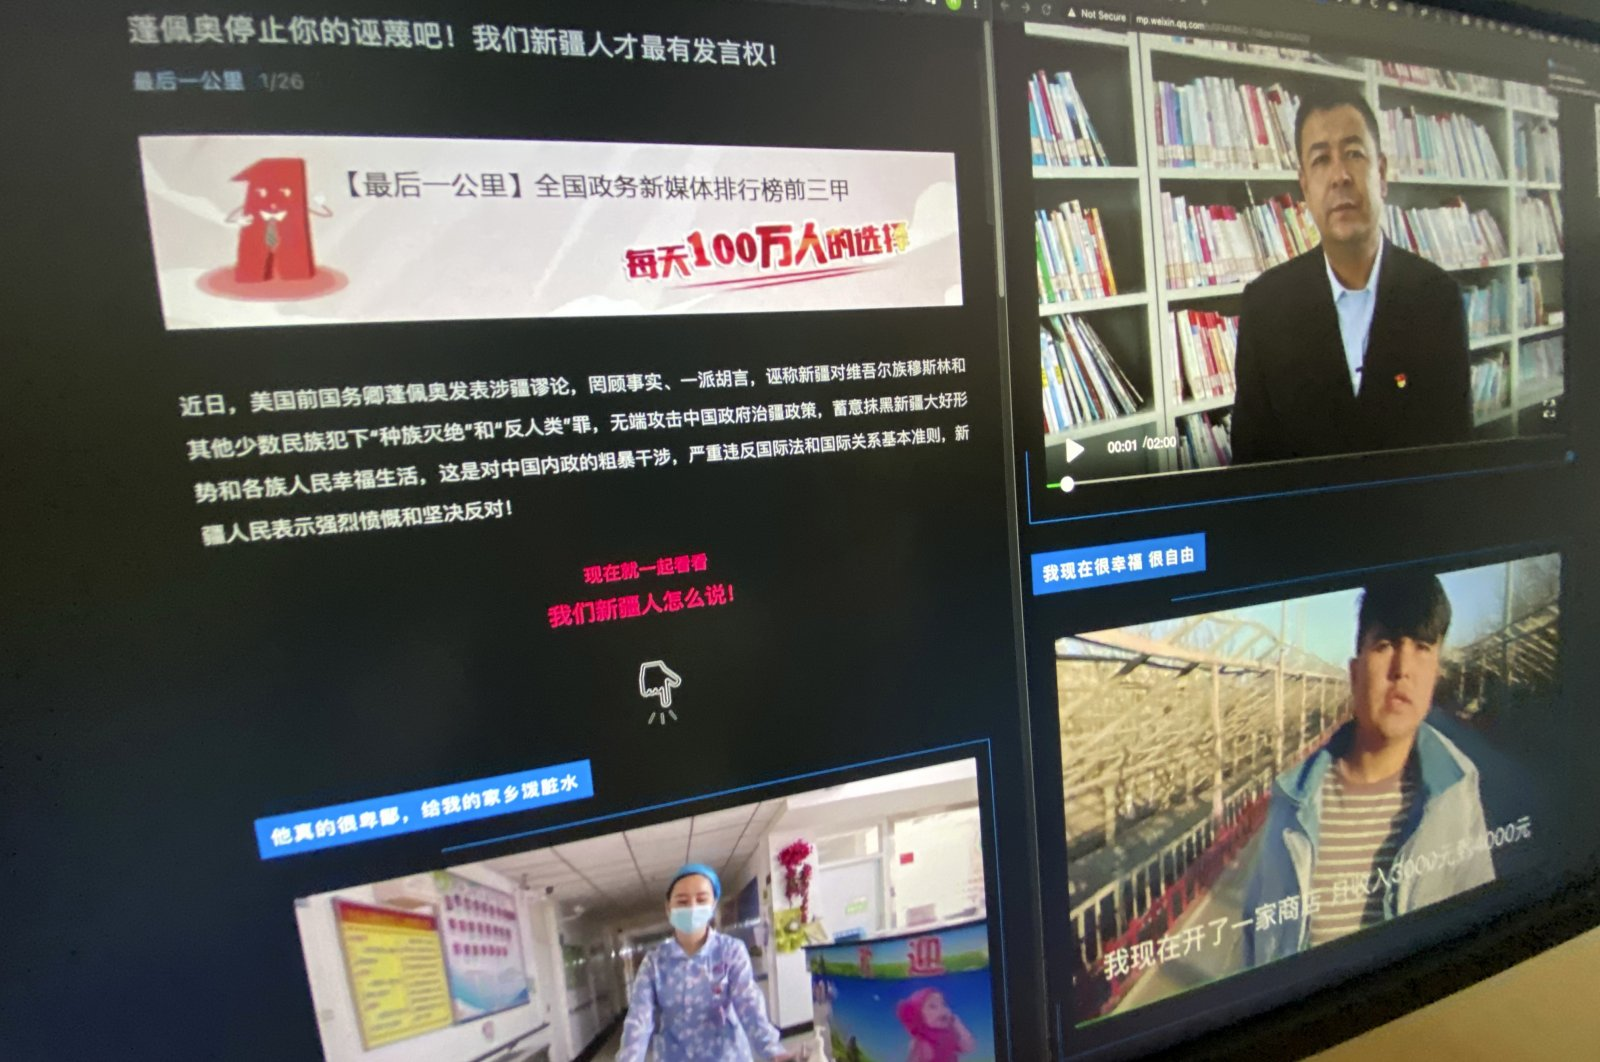 """A webpage with the title """"Pompeo stop your slanders! Only we Xinjiang people have a say!"""" and videos of ethnic Uyghurs responding to former U.S. Secretary of State Mike Pompeo are displayed on a computer screen in Beijing, China, May 19, 2021. (AP Photo)"""